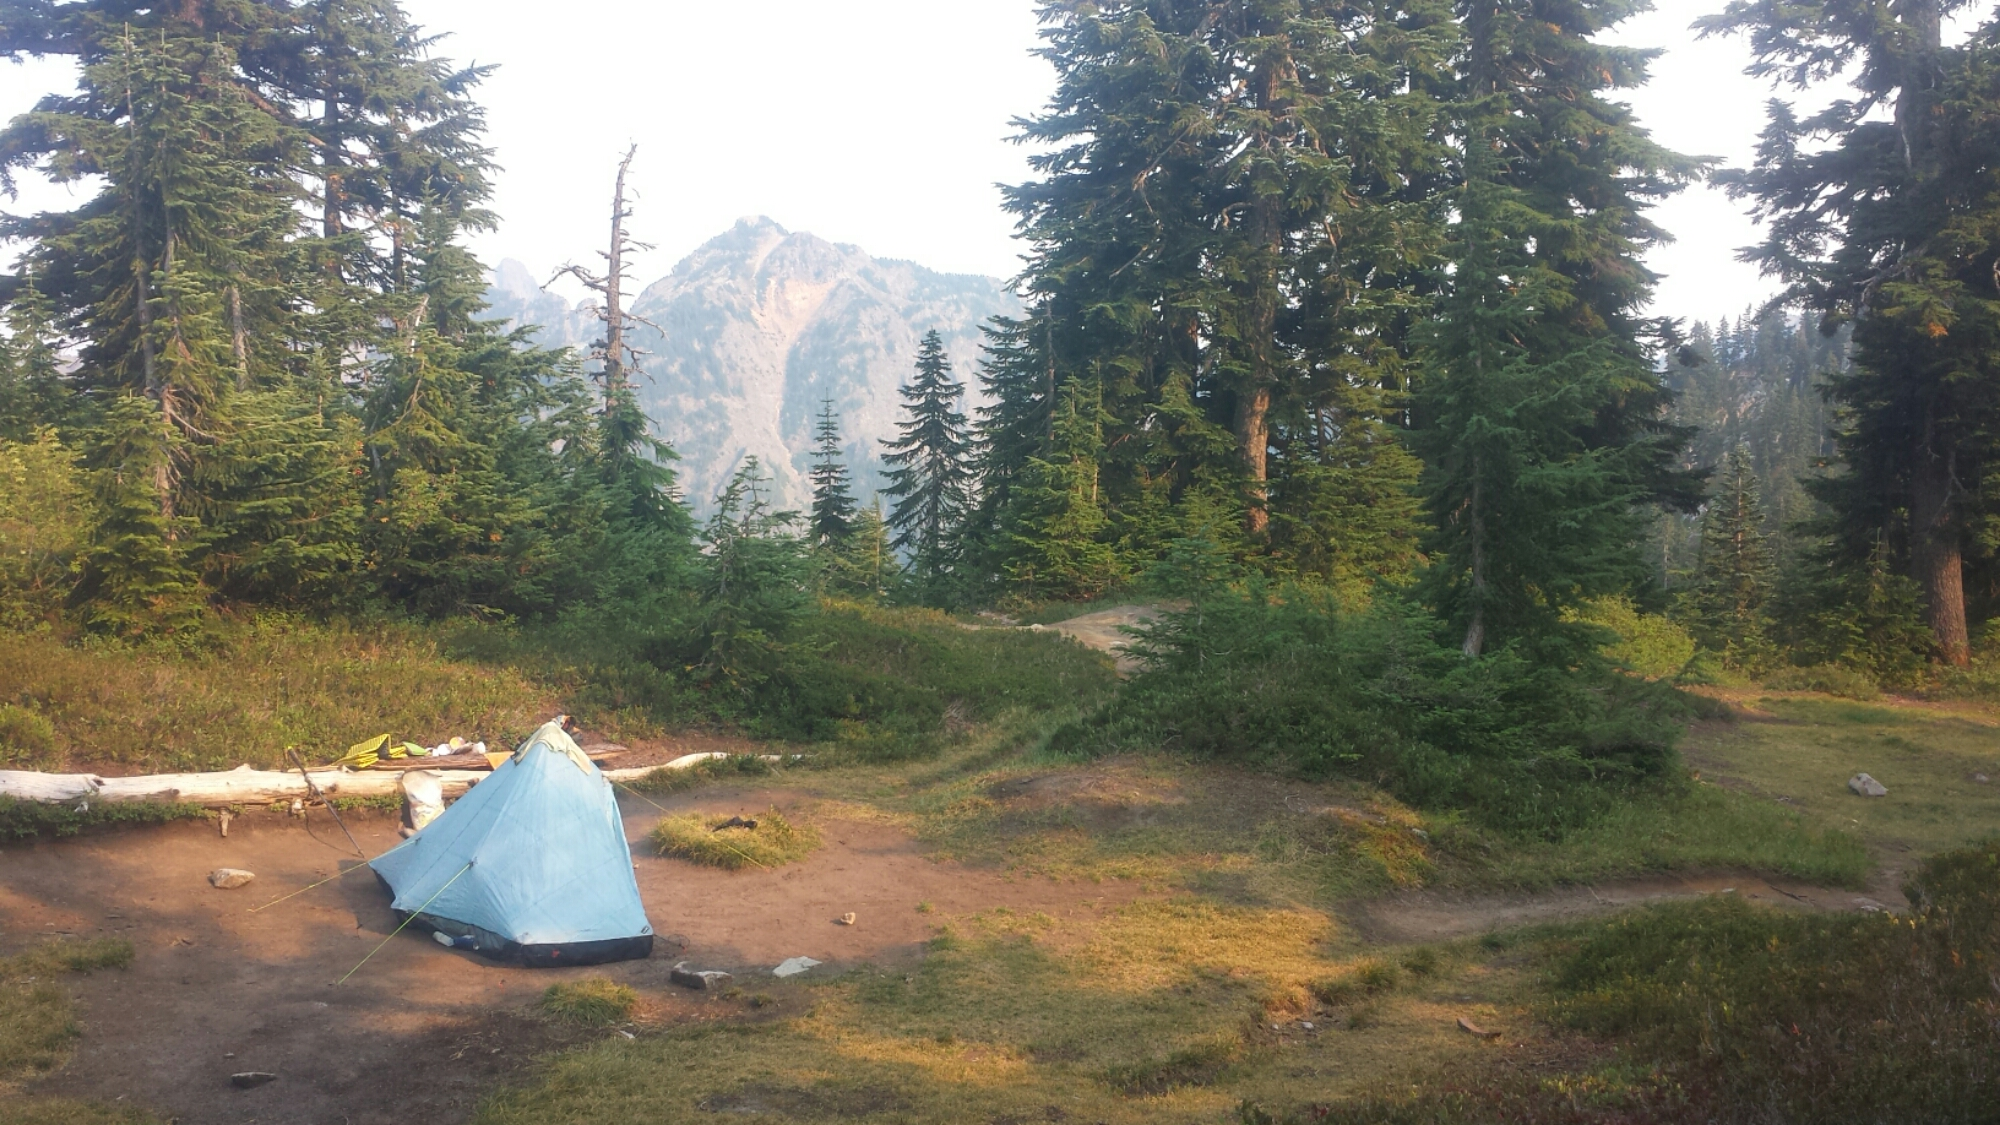 Camping near Ridge Lake